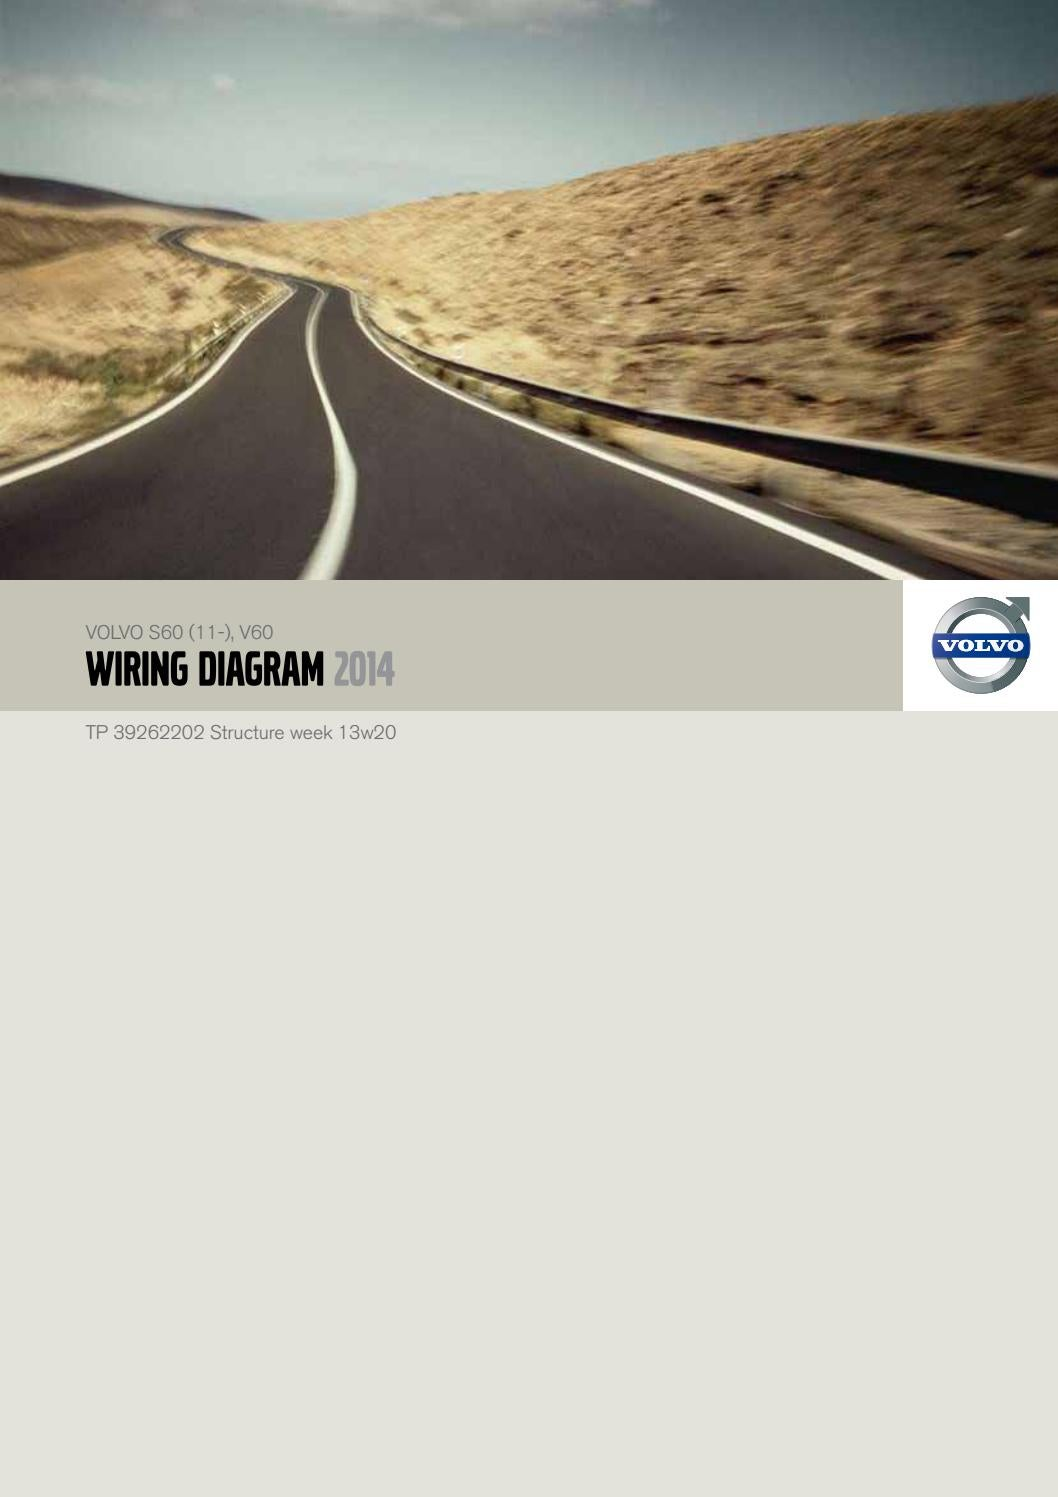 Volvo S60 V60 2014 Electrical Wiring Diagram Manual Instant – Download by  heydownloads - issuu | Volvo Wiring Diagram S60 |  | Issuu